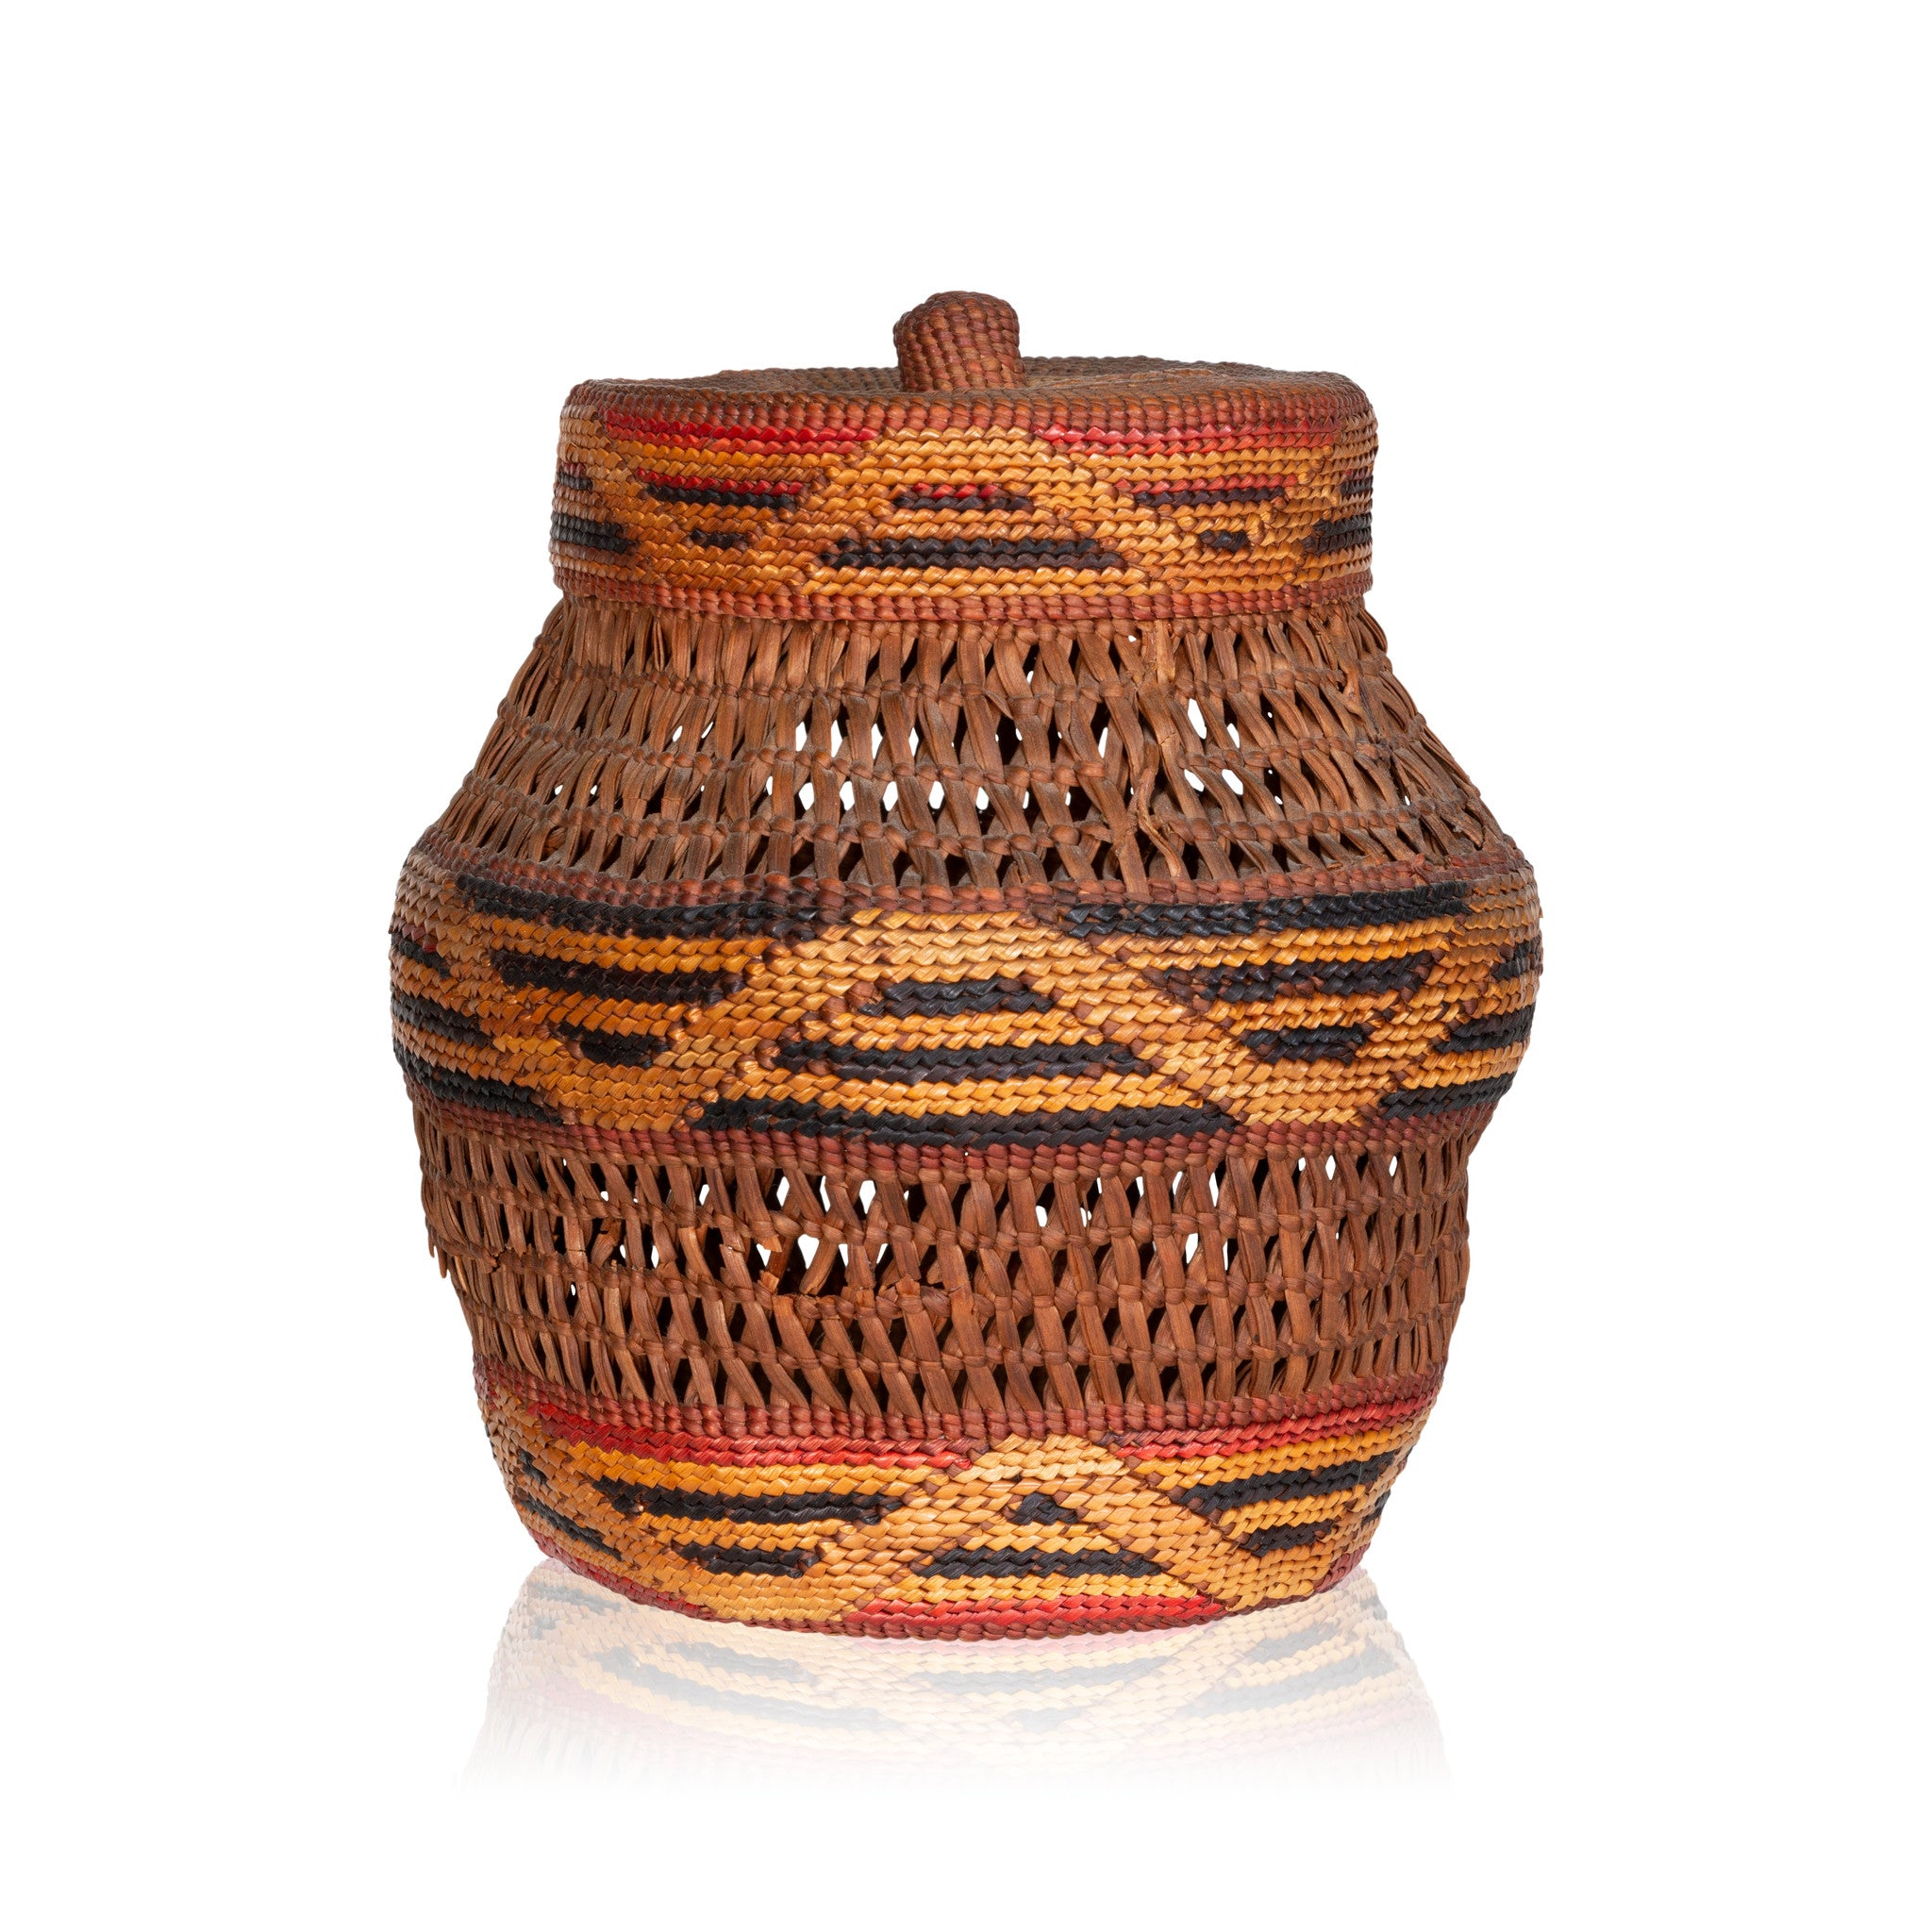 Tlingit Lidded Jar baskets, tlingit